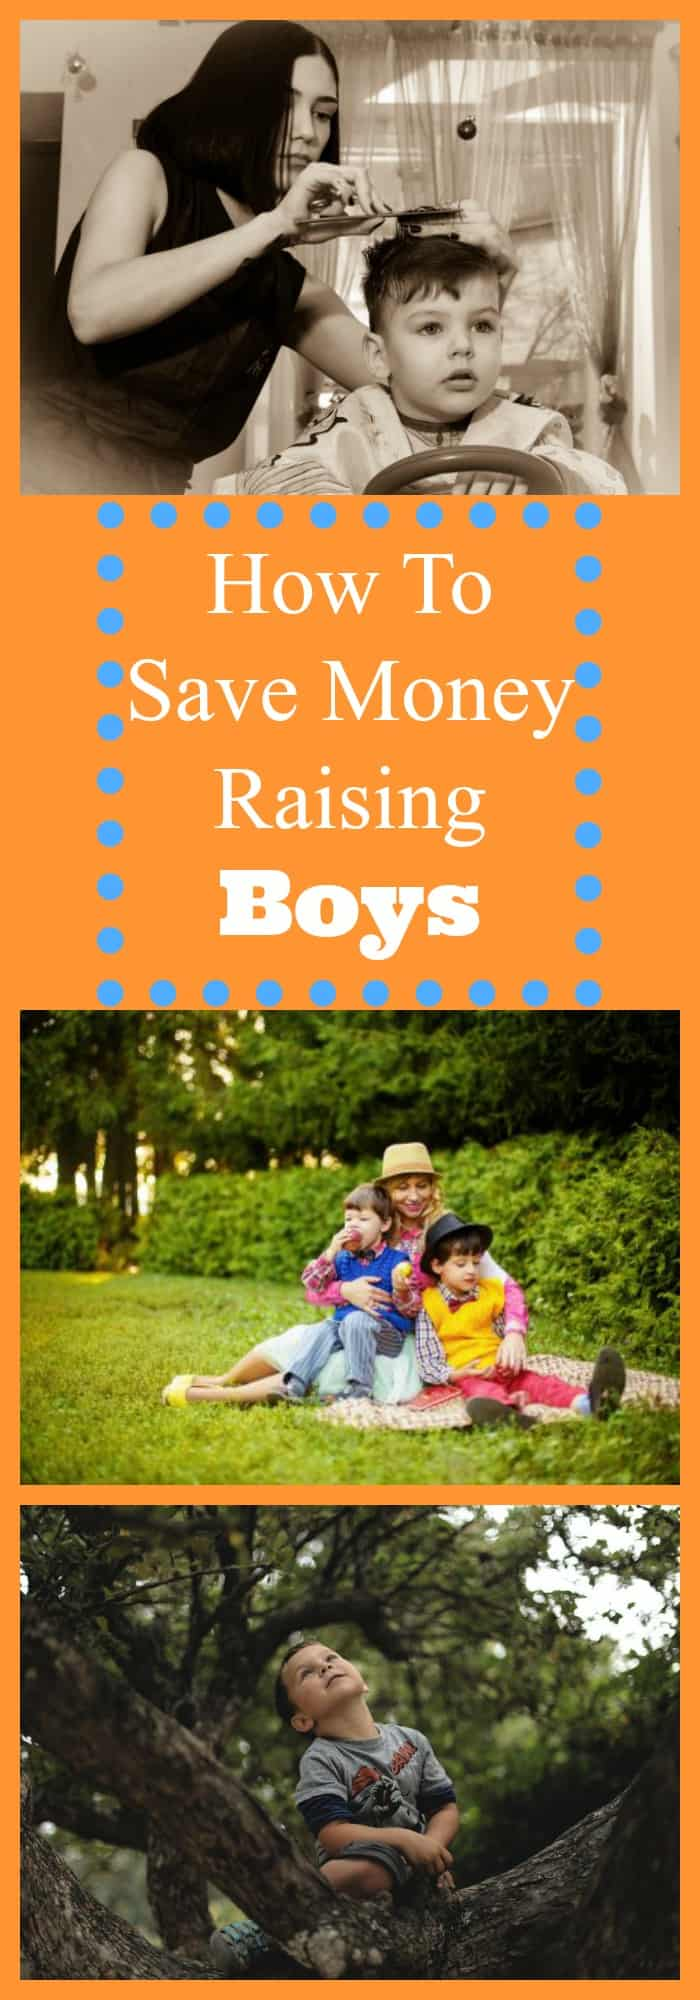 How to Save Money Raising Boys